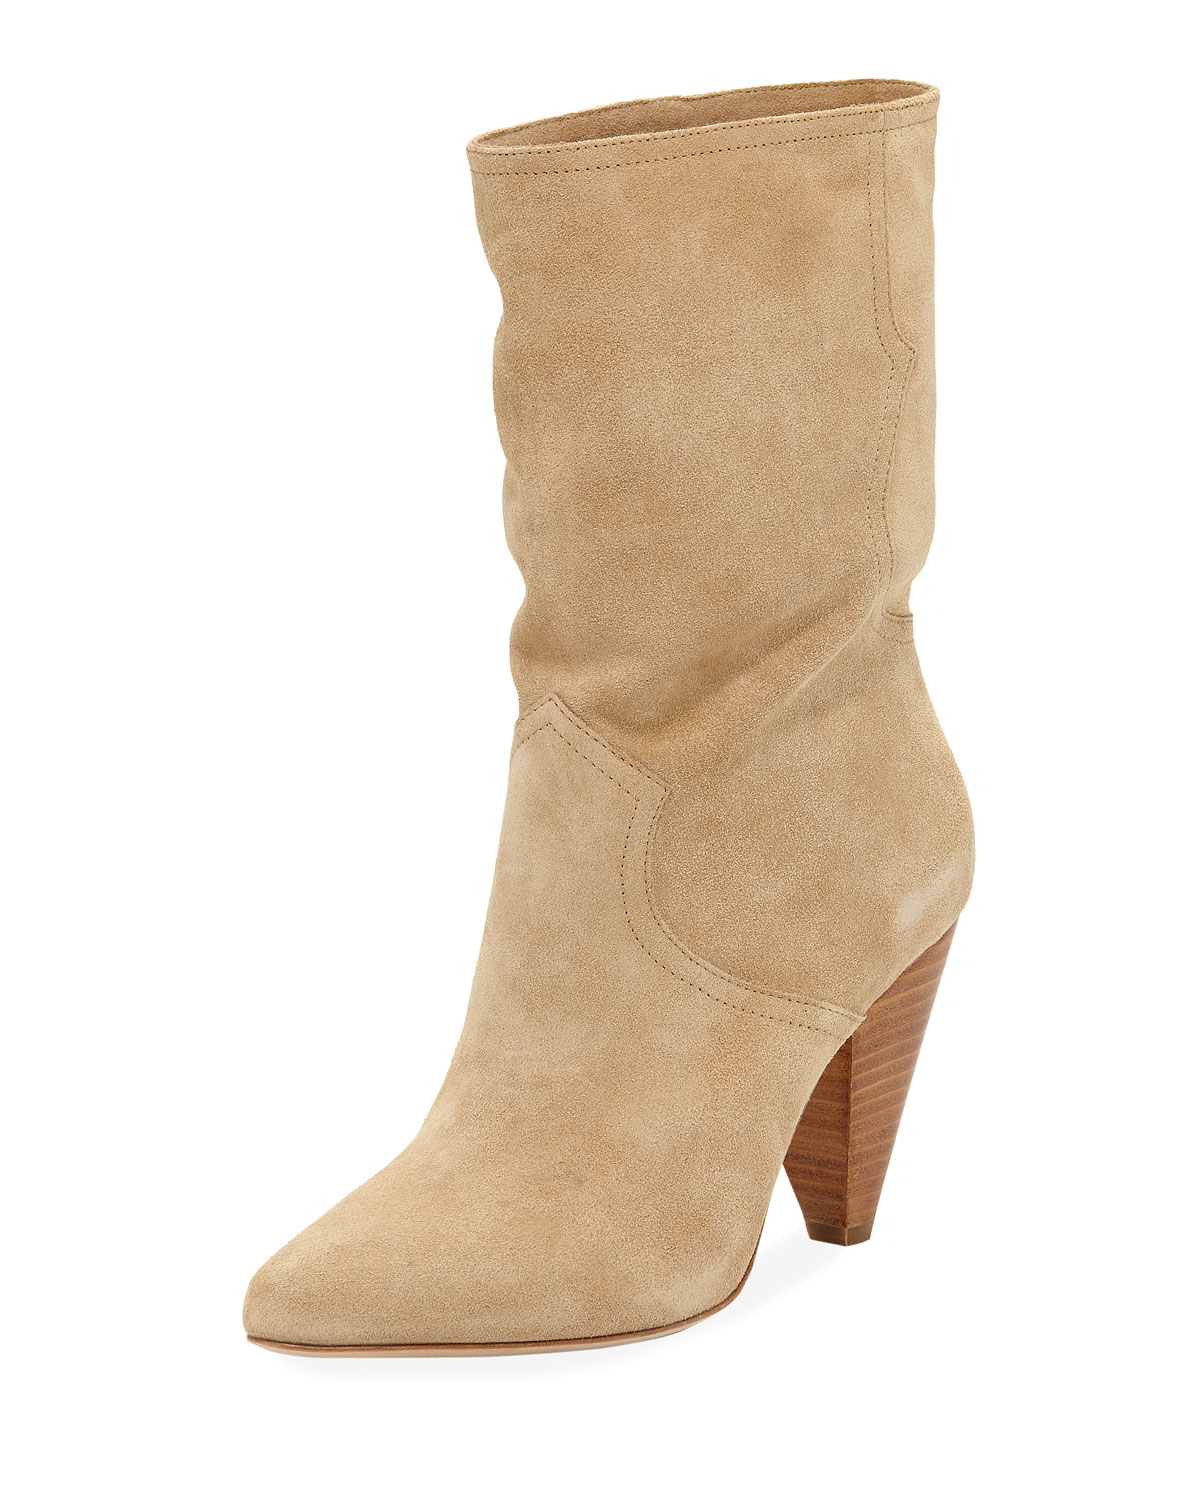 cheap sale high quality Joie Round-Toe Suede Mid-Calf Boots online cheap online new styles for sale official sale online SnR5Wh04d